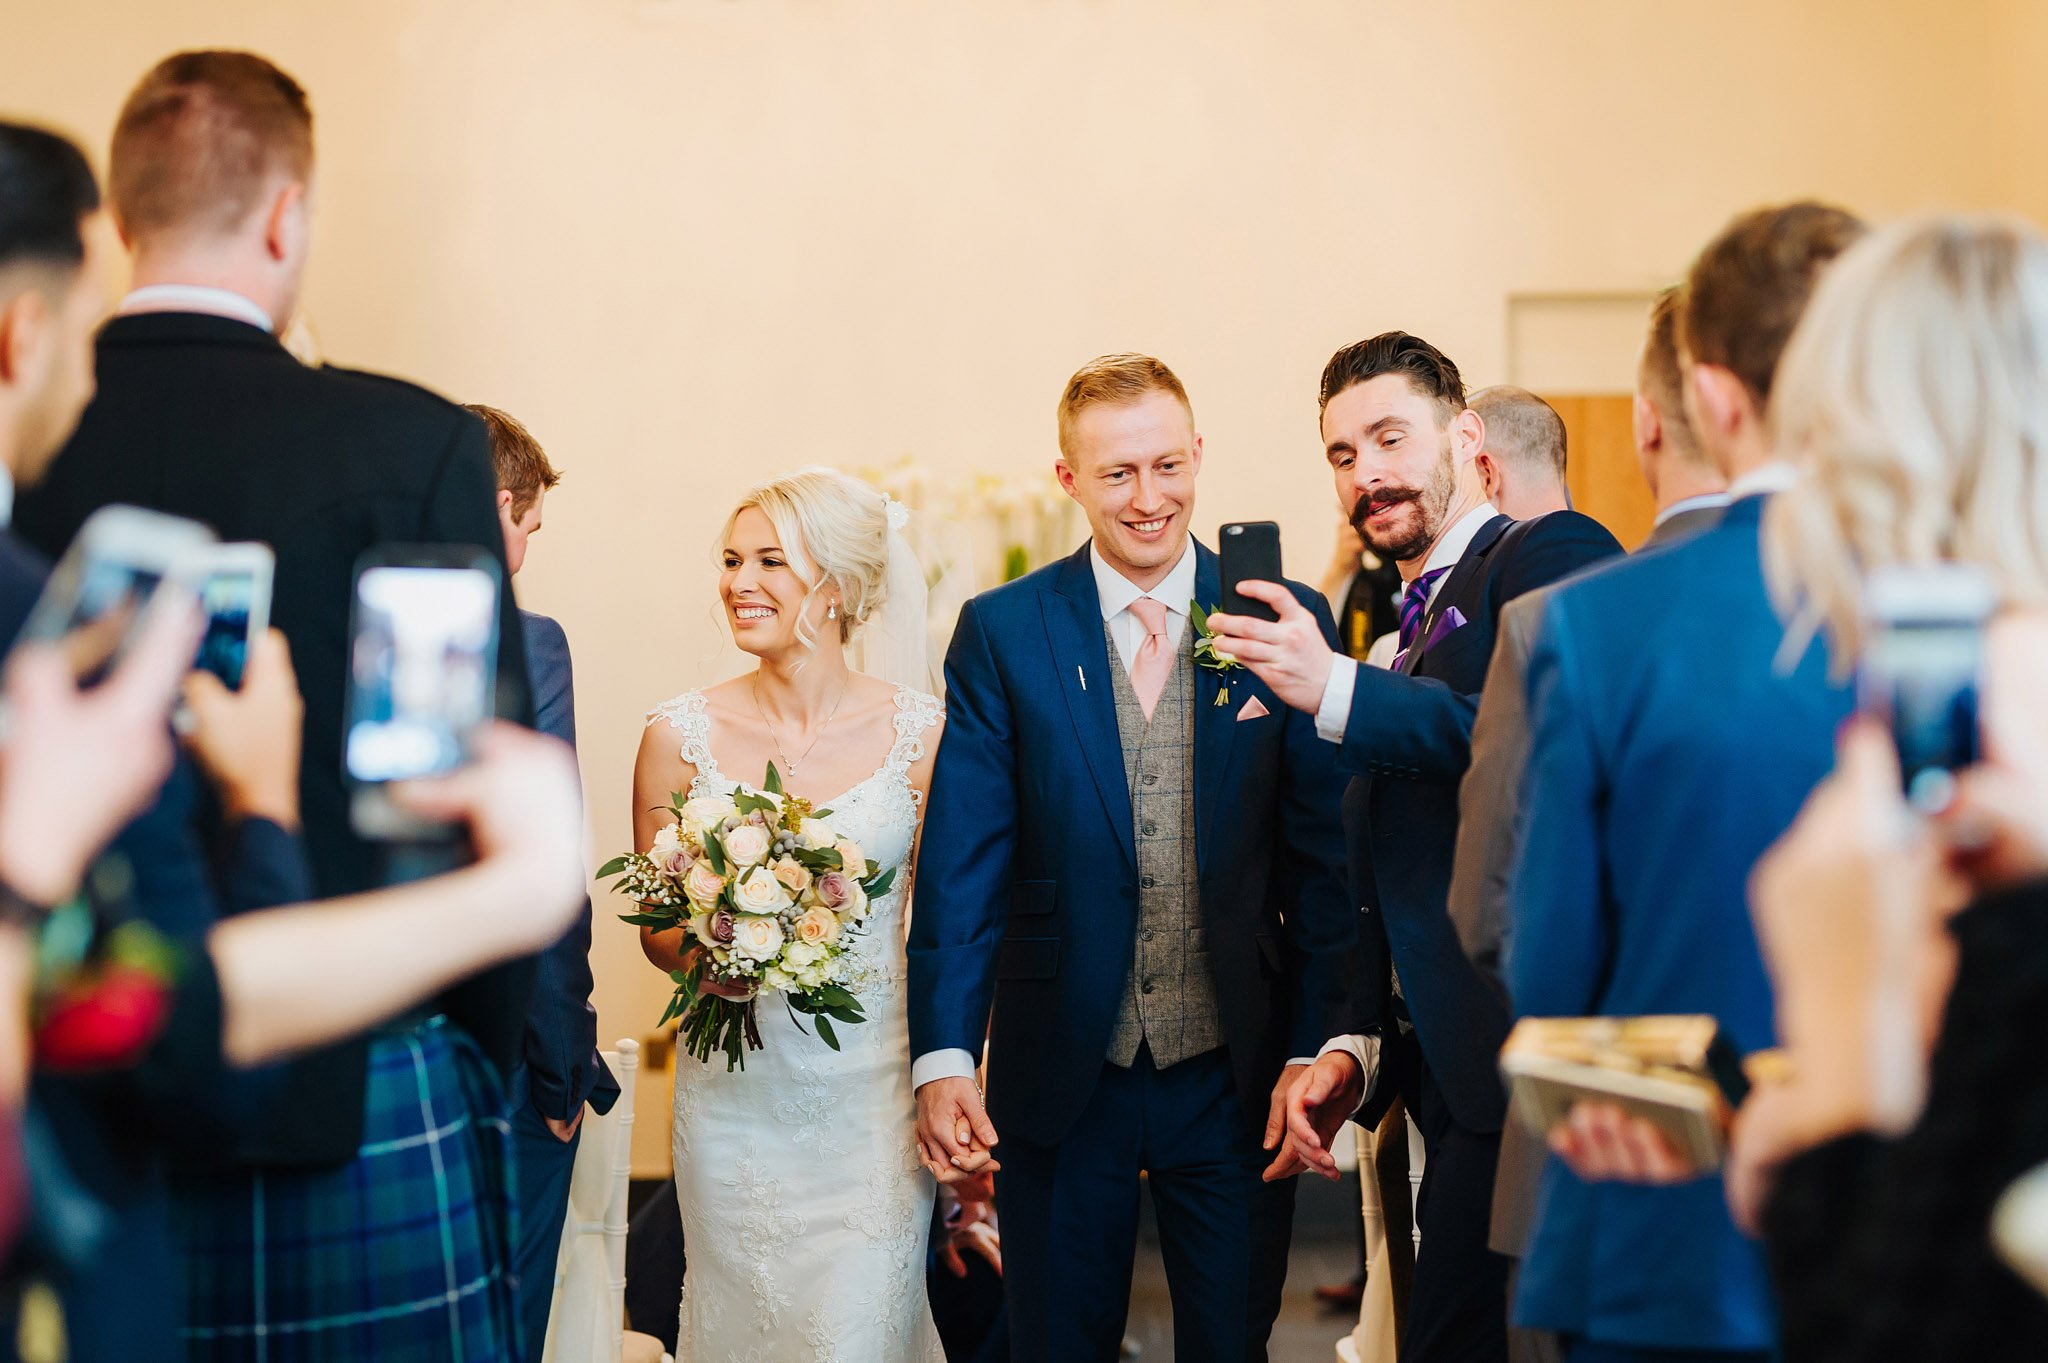 Lemore Manor wedding, Herefordshire - West Midlands | Sadie + Ken 36